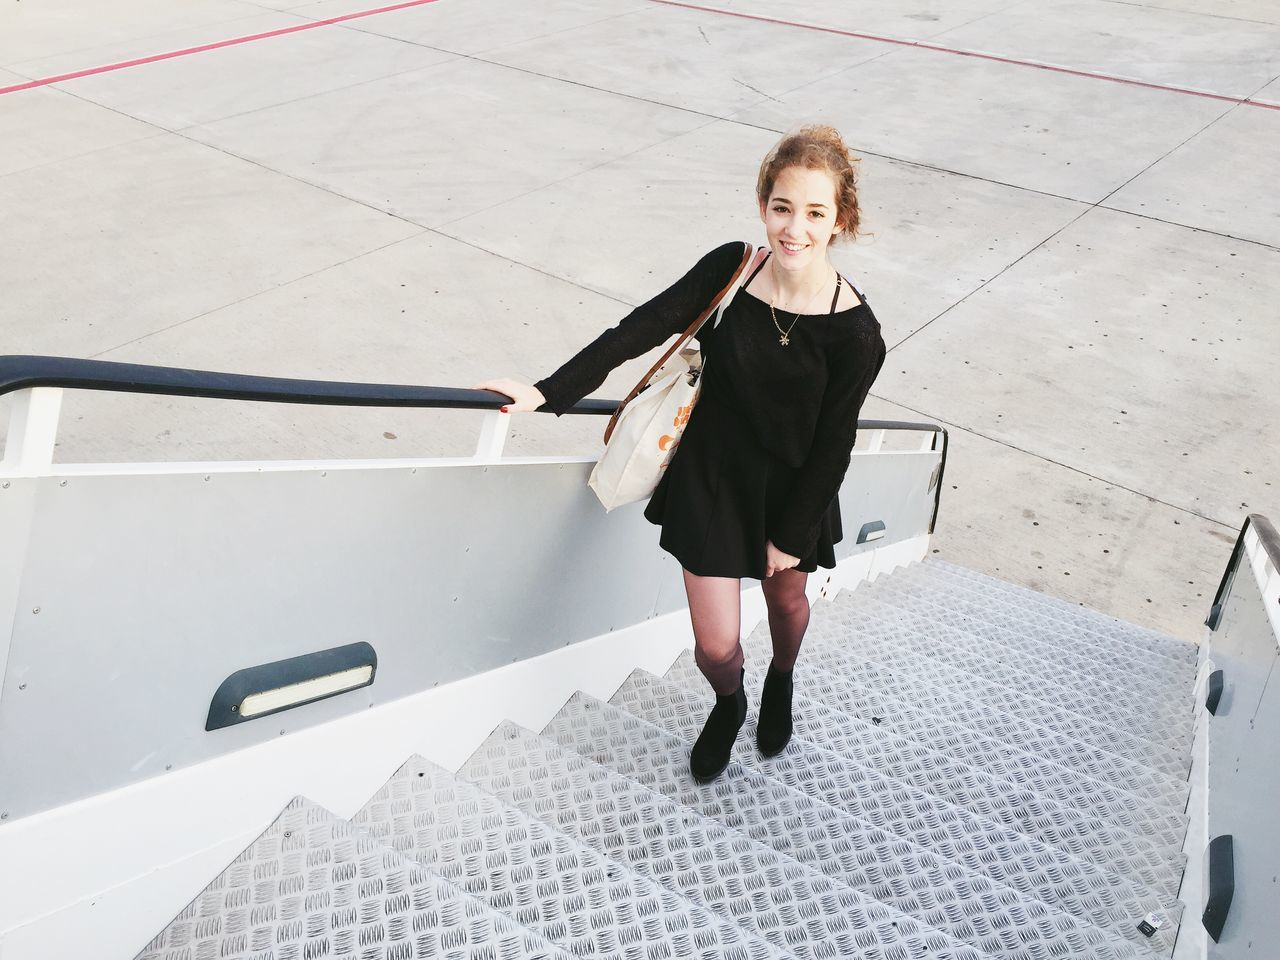 Traveling At The Airport Airport Airplane Travel Travelling Stairs Girl Boarding